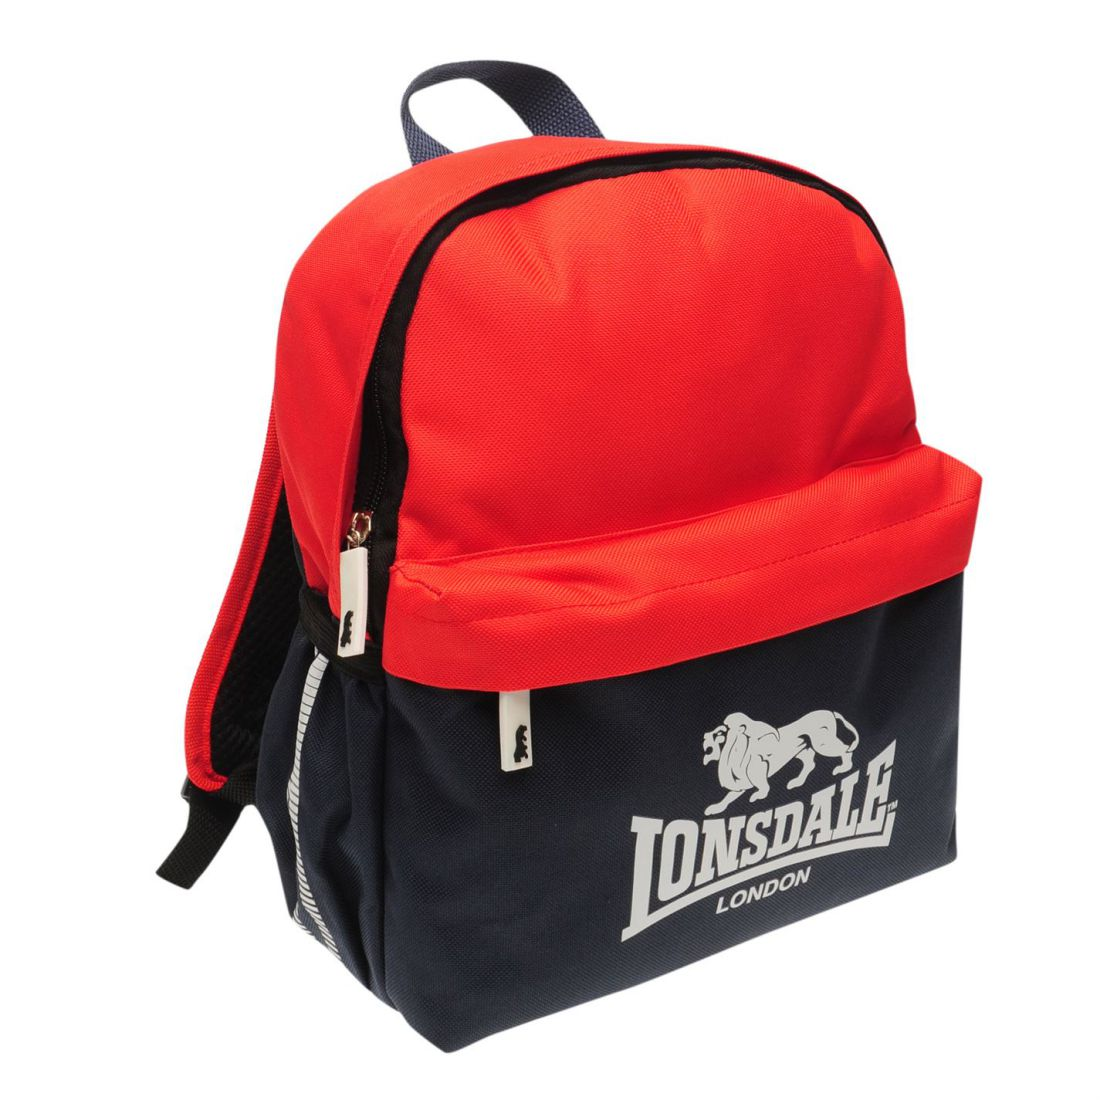 7b0c5804f3 Details about Lonsdale Mini Back Pack Travel Luggage Everyday Casual Bag  Accessories